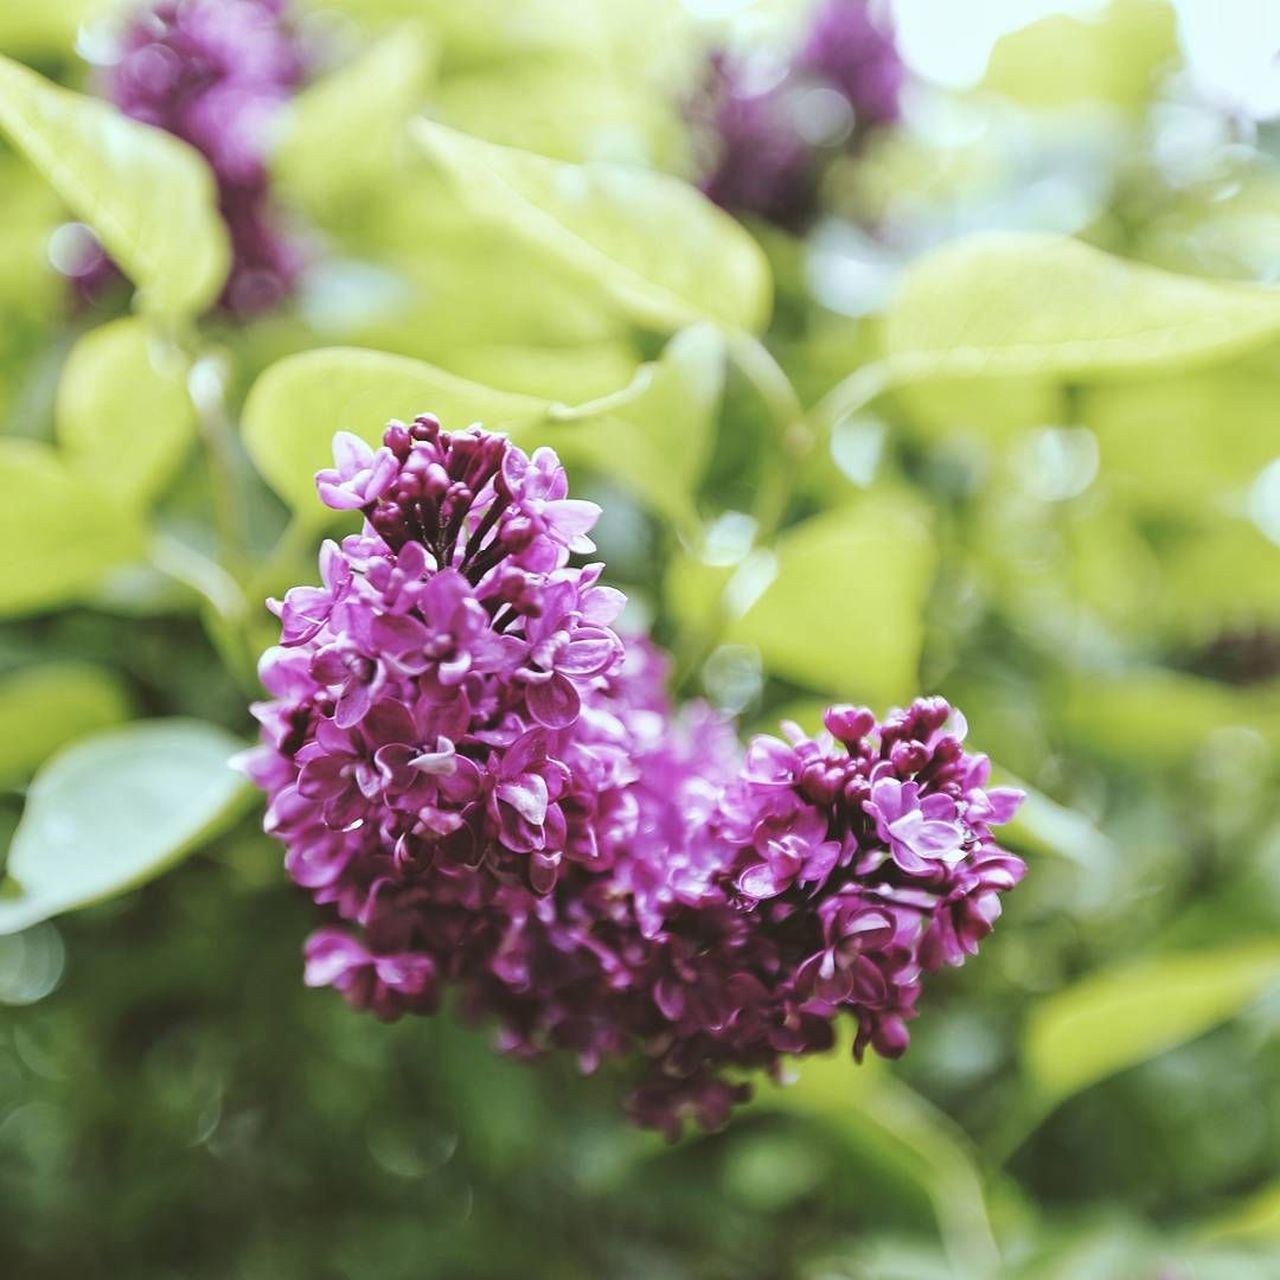 Flower Purple Plant Nature Flower Head Blossom No People Fragility Scented Close-up Beauty In Nature Outdoors Day Freshness Pastel Colored Eye4photography  Nature Green Color Freshness Beauty In Nature